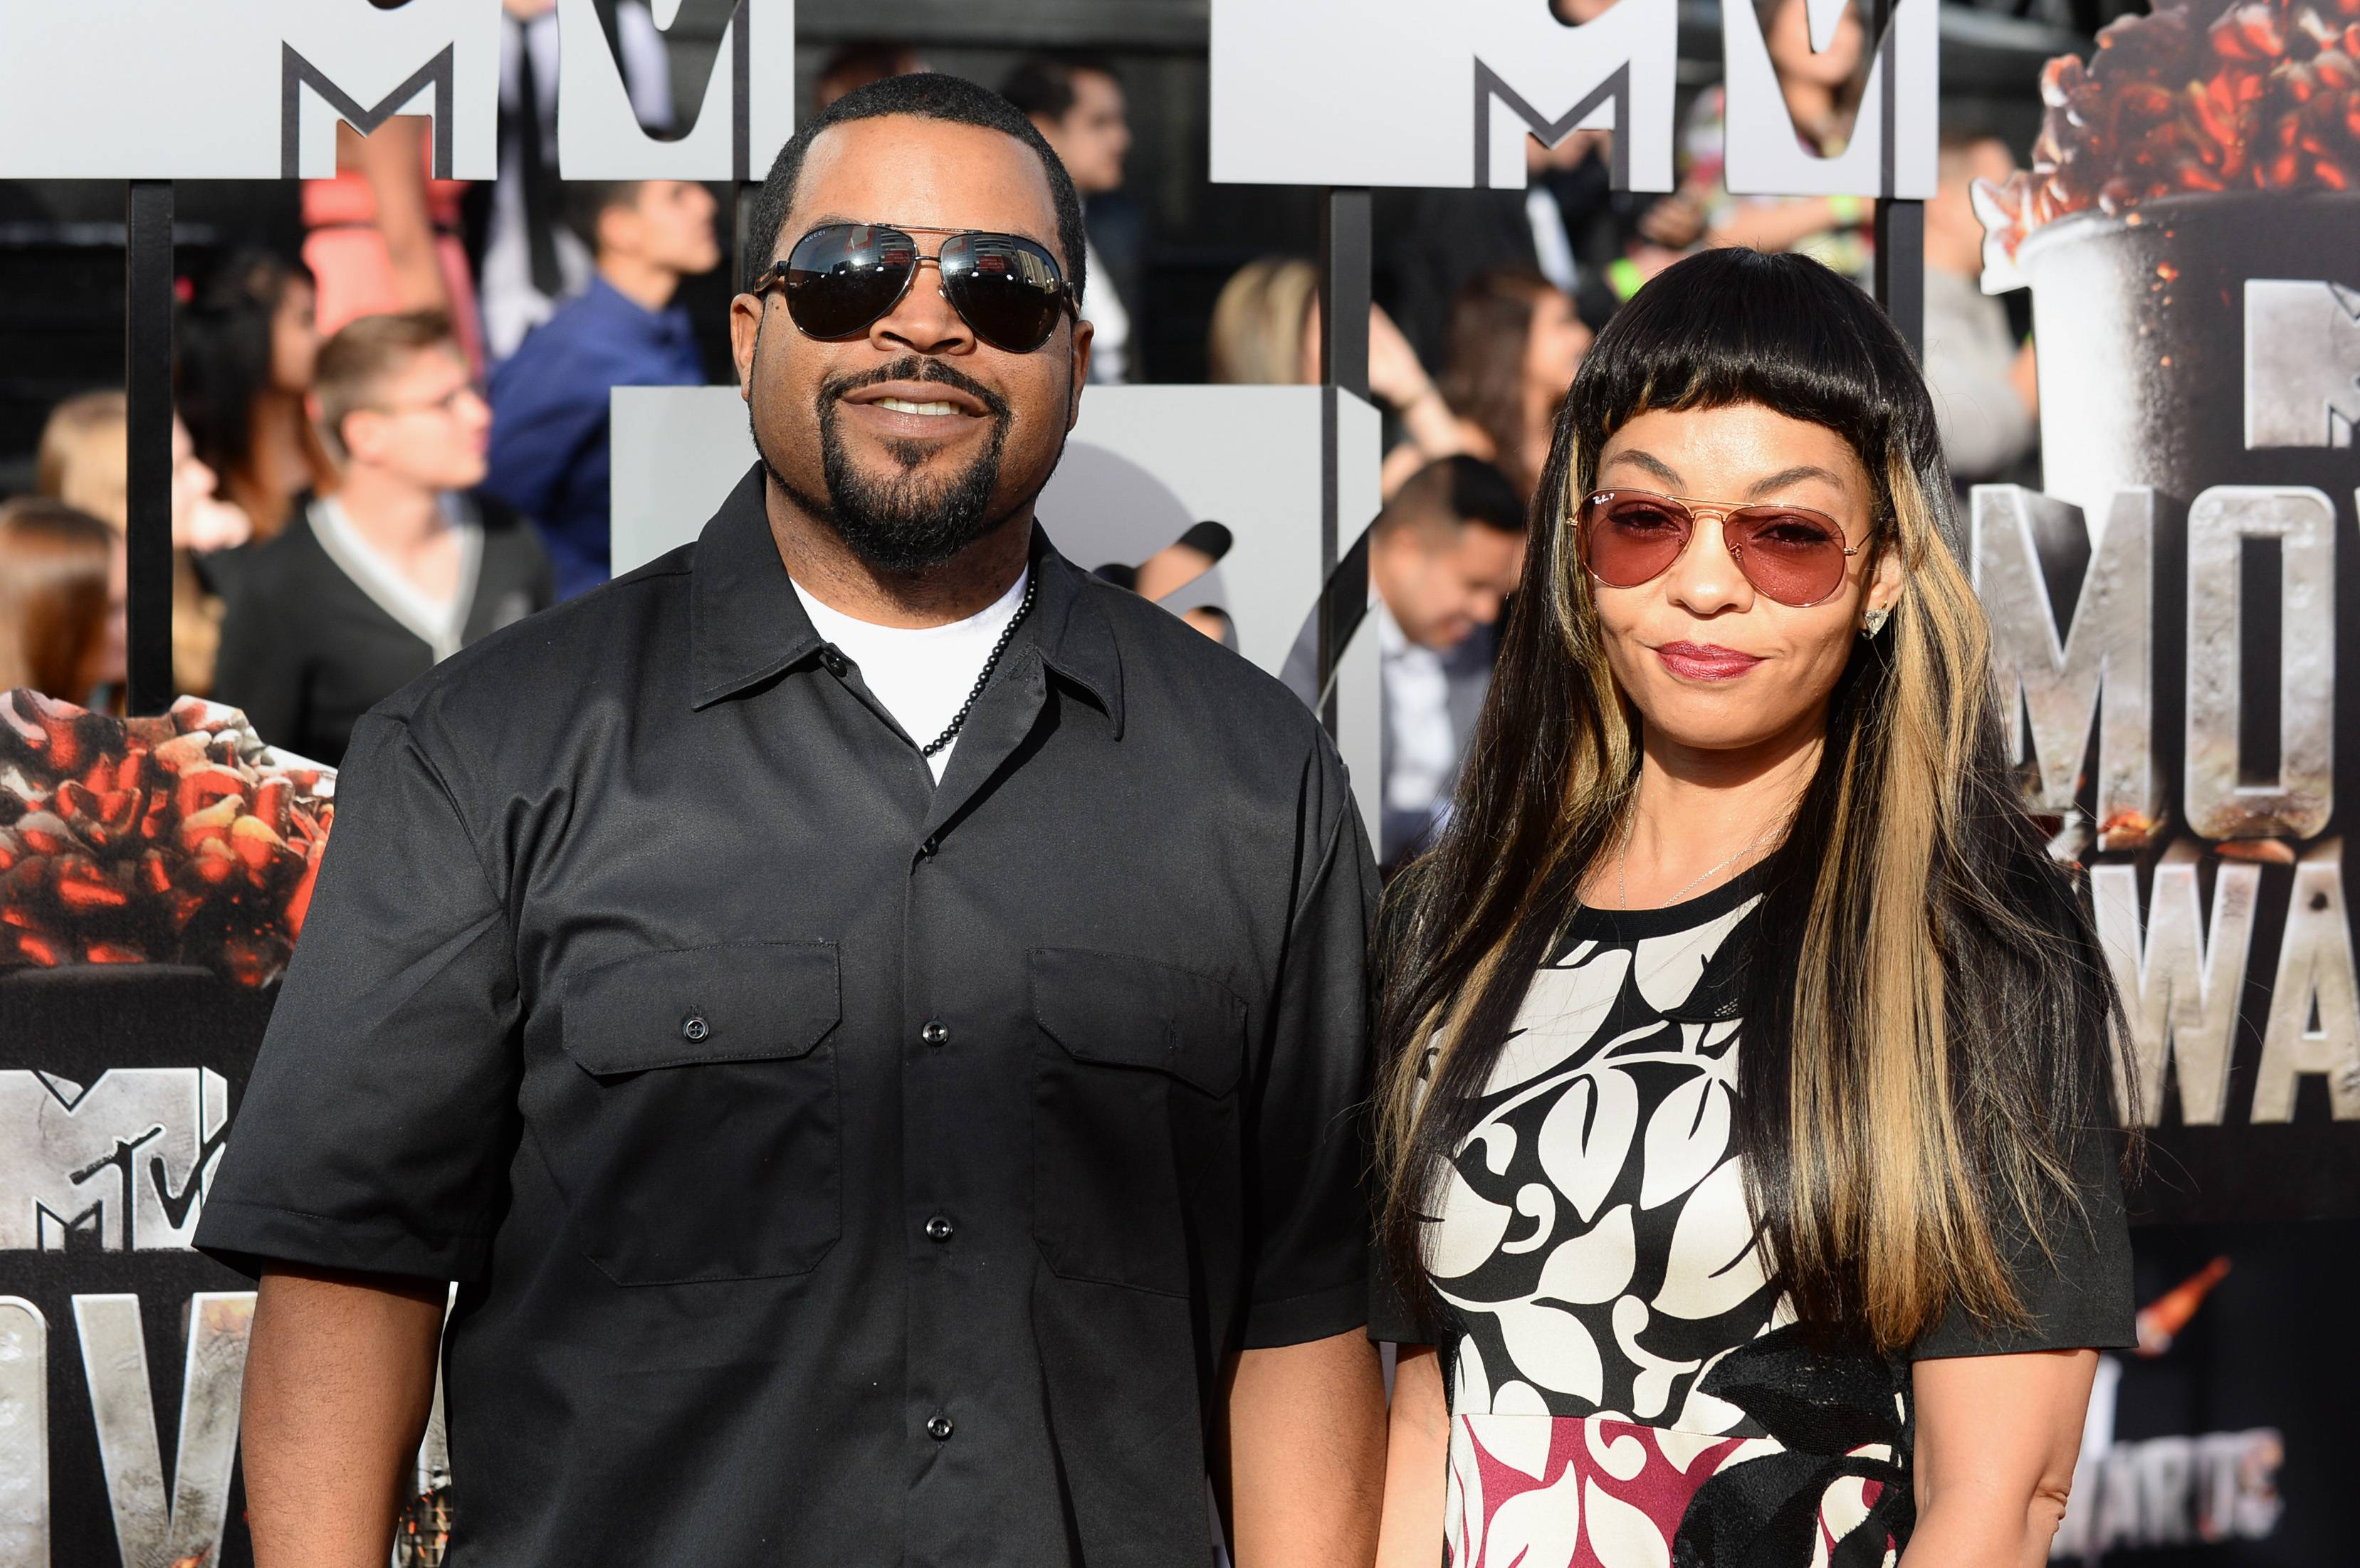 Ice Cube, left, and Kimberly Woodruff arrive at the MTV Movie Awards on Sunday.